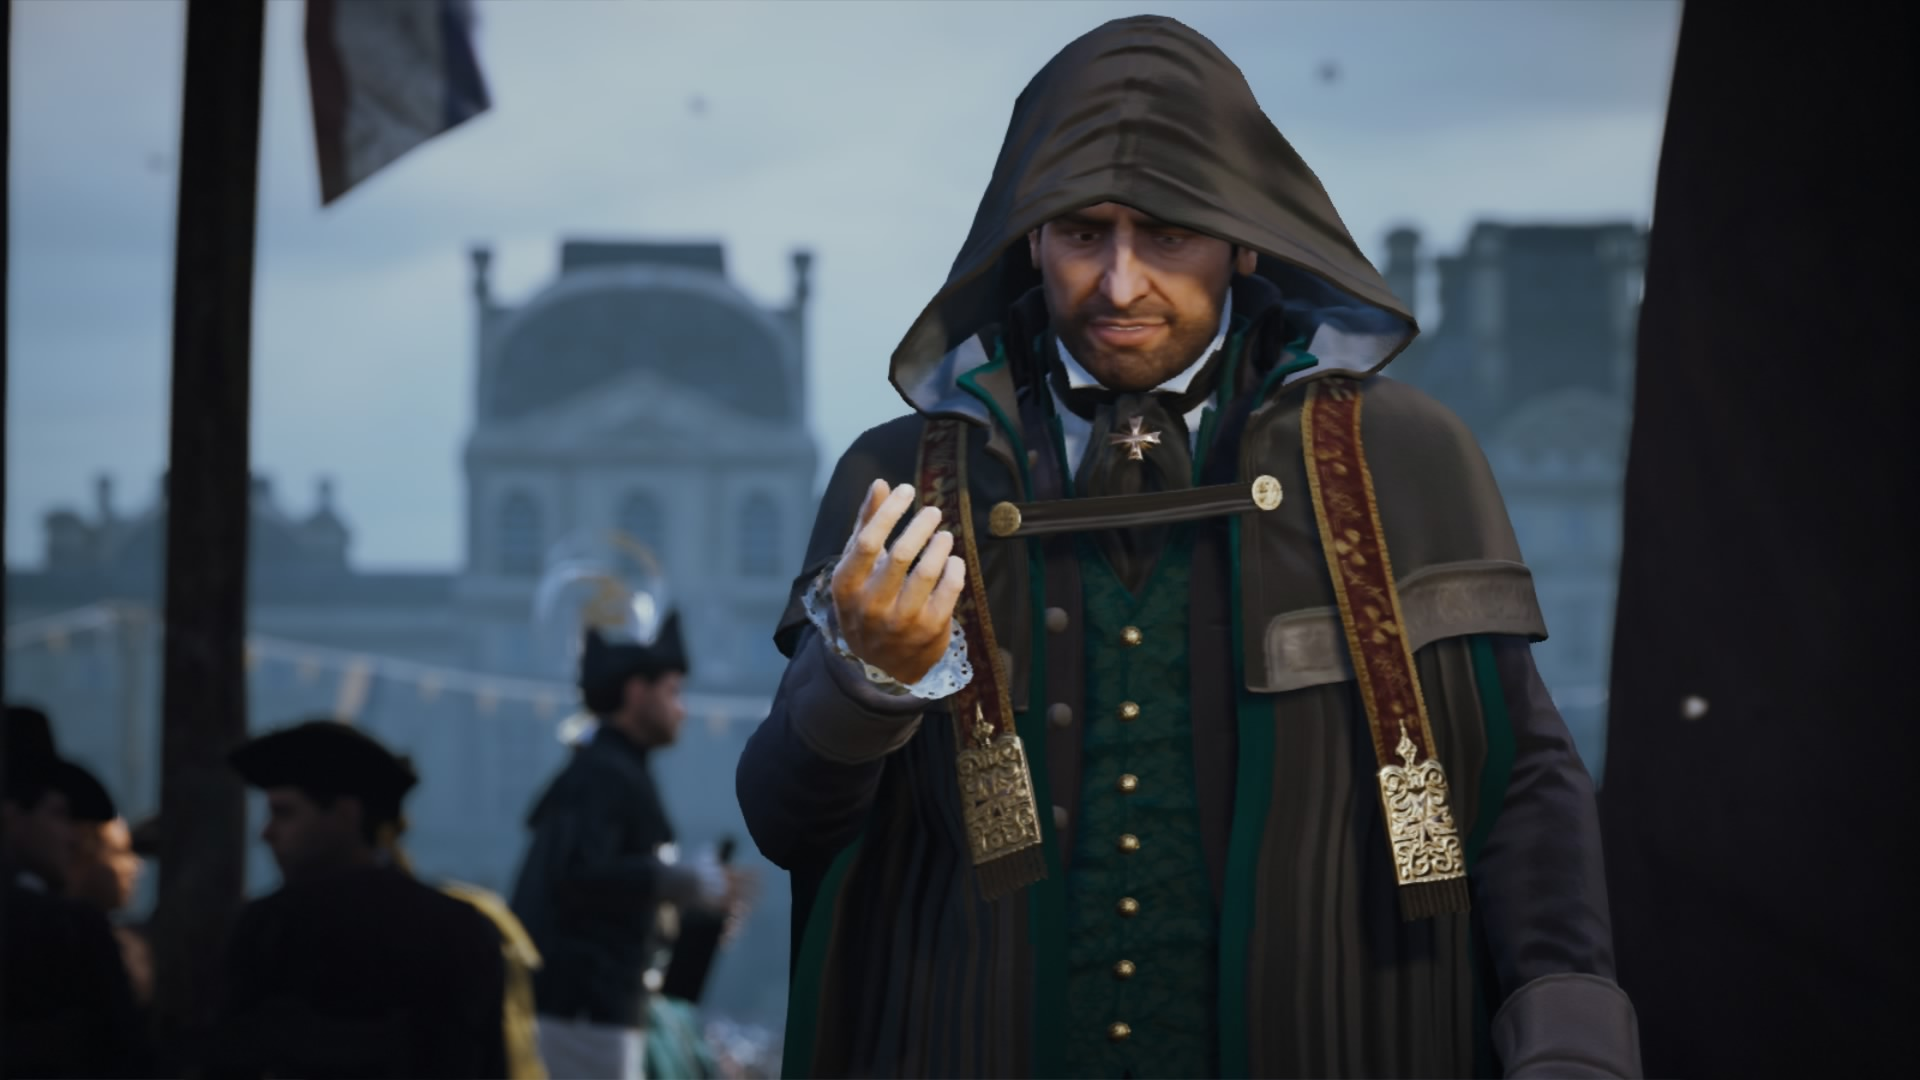 http://img4.wikia.nocookie.net/__cb20141217162656/assassinscreed/fr/images/1/17/ACU_Fran%C3%A7ois-Thomas_Germain_estrade_guillotine_02.jpg